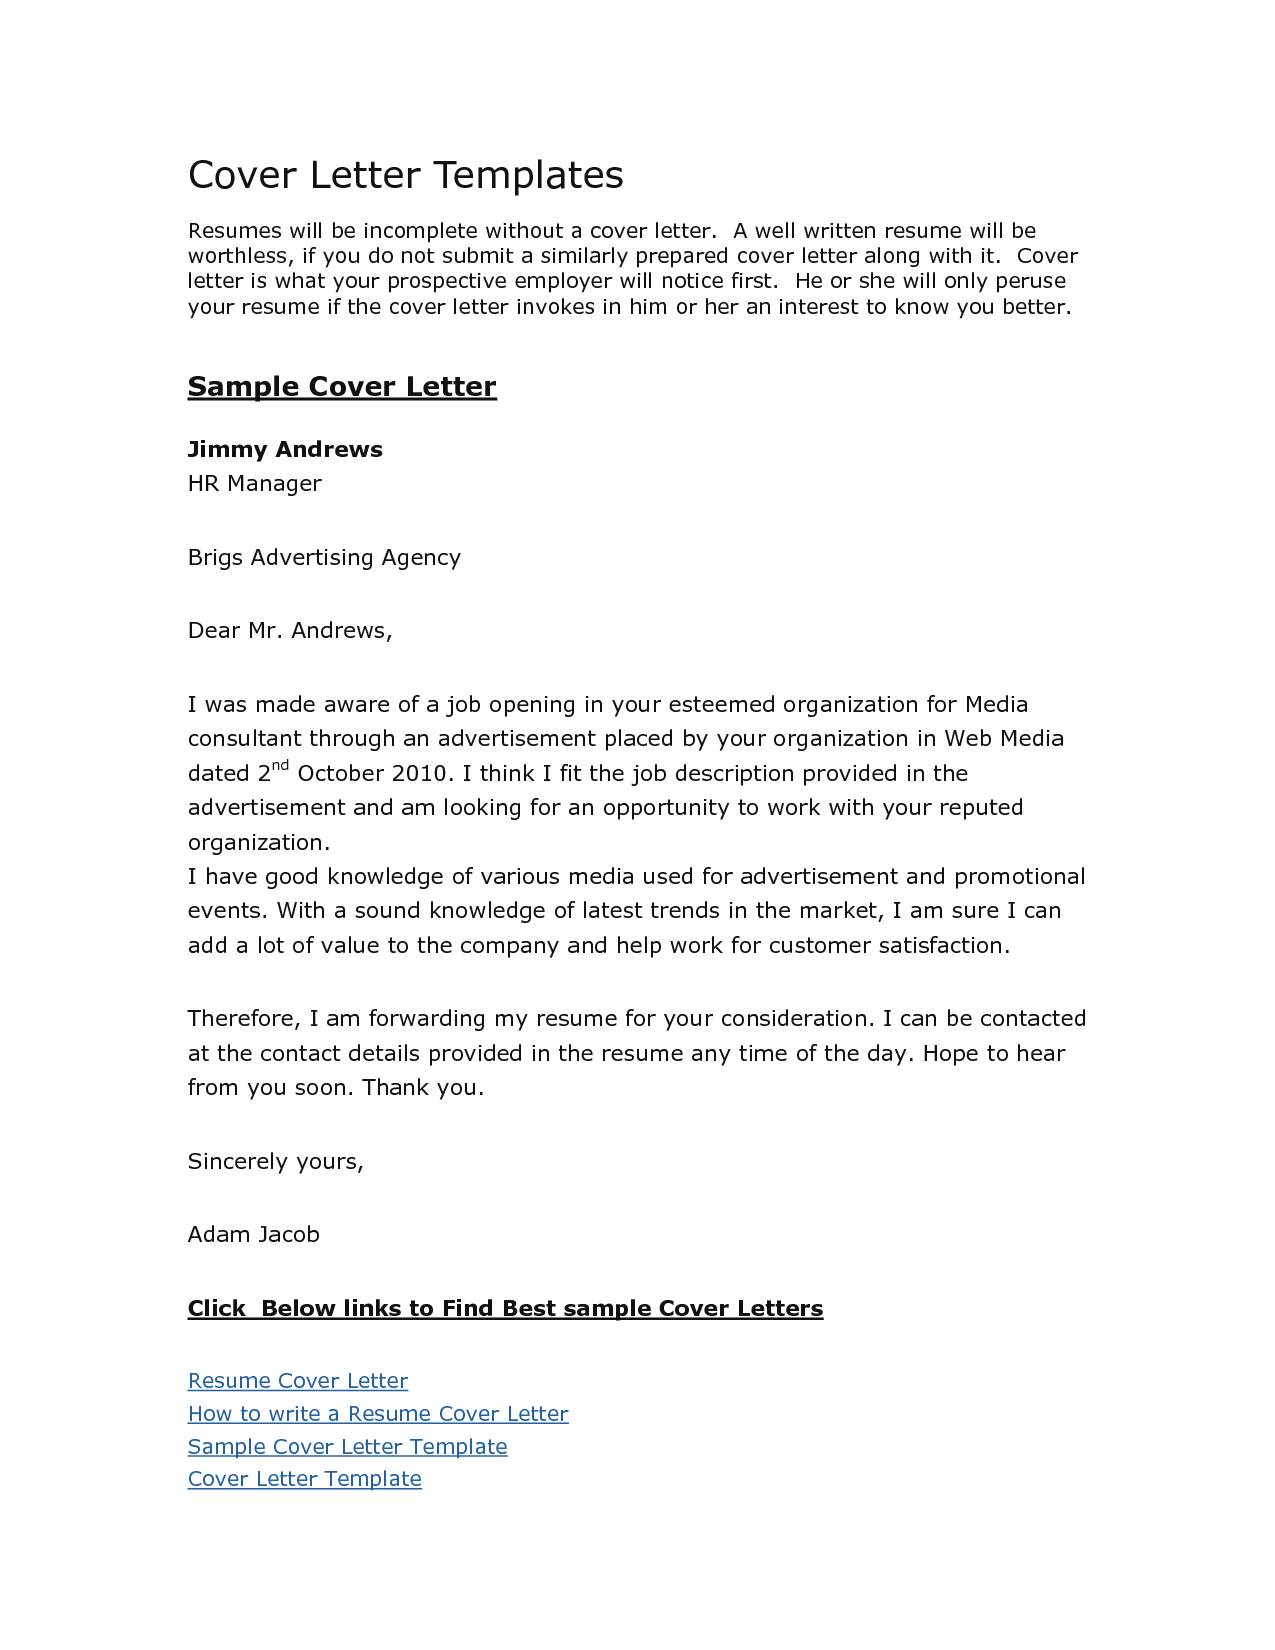 Letter Template  Google Search  Planning Resources